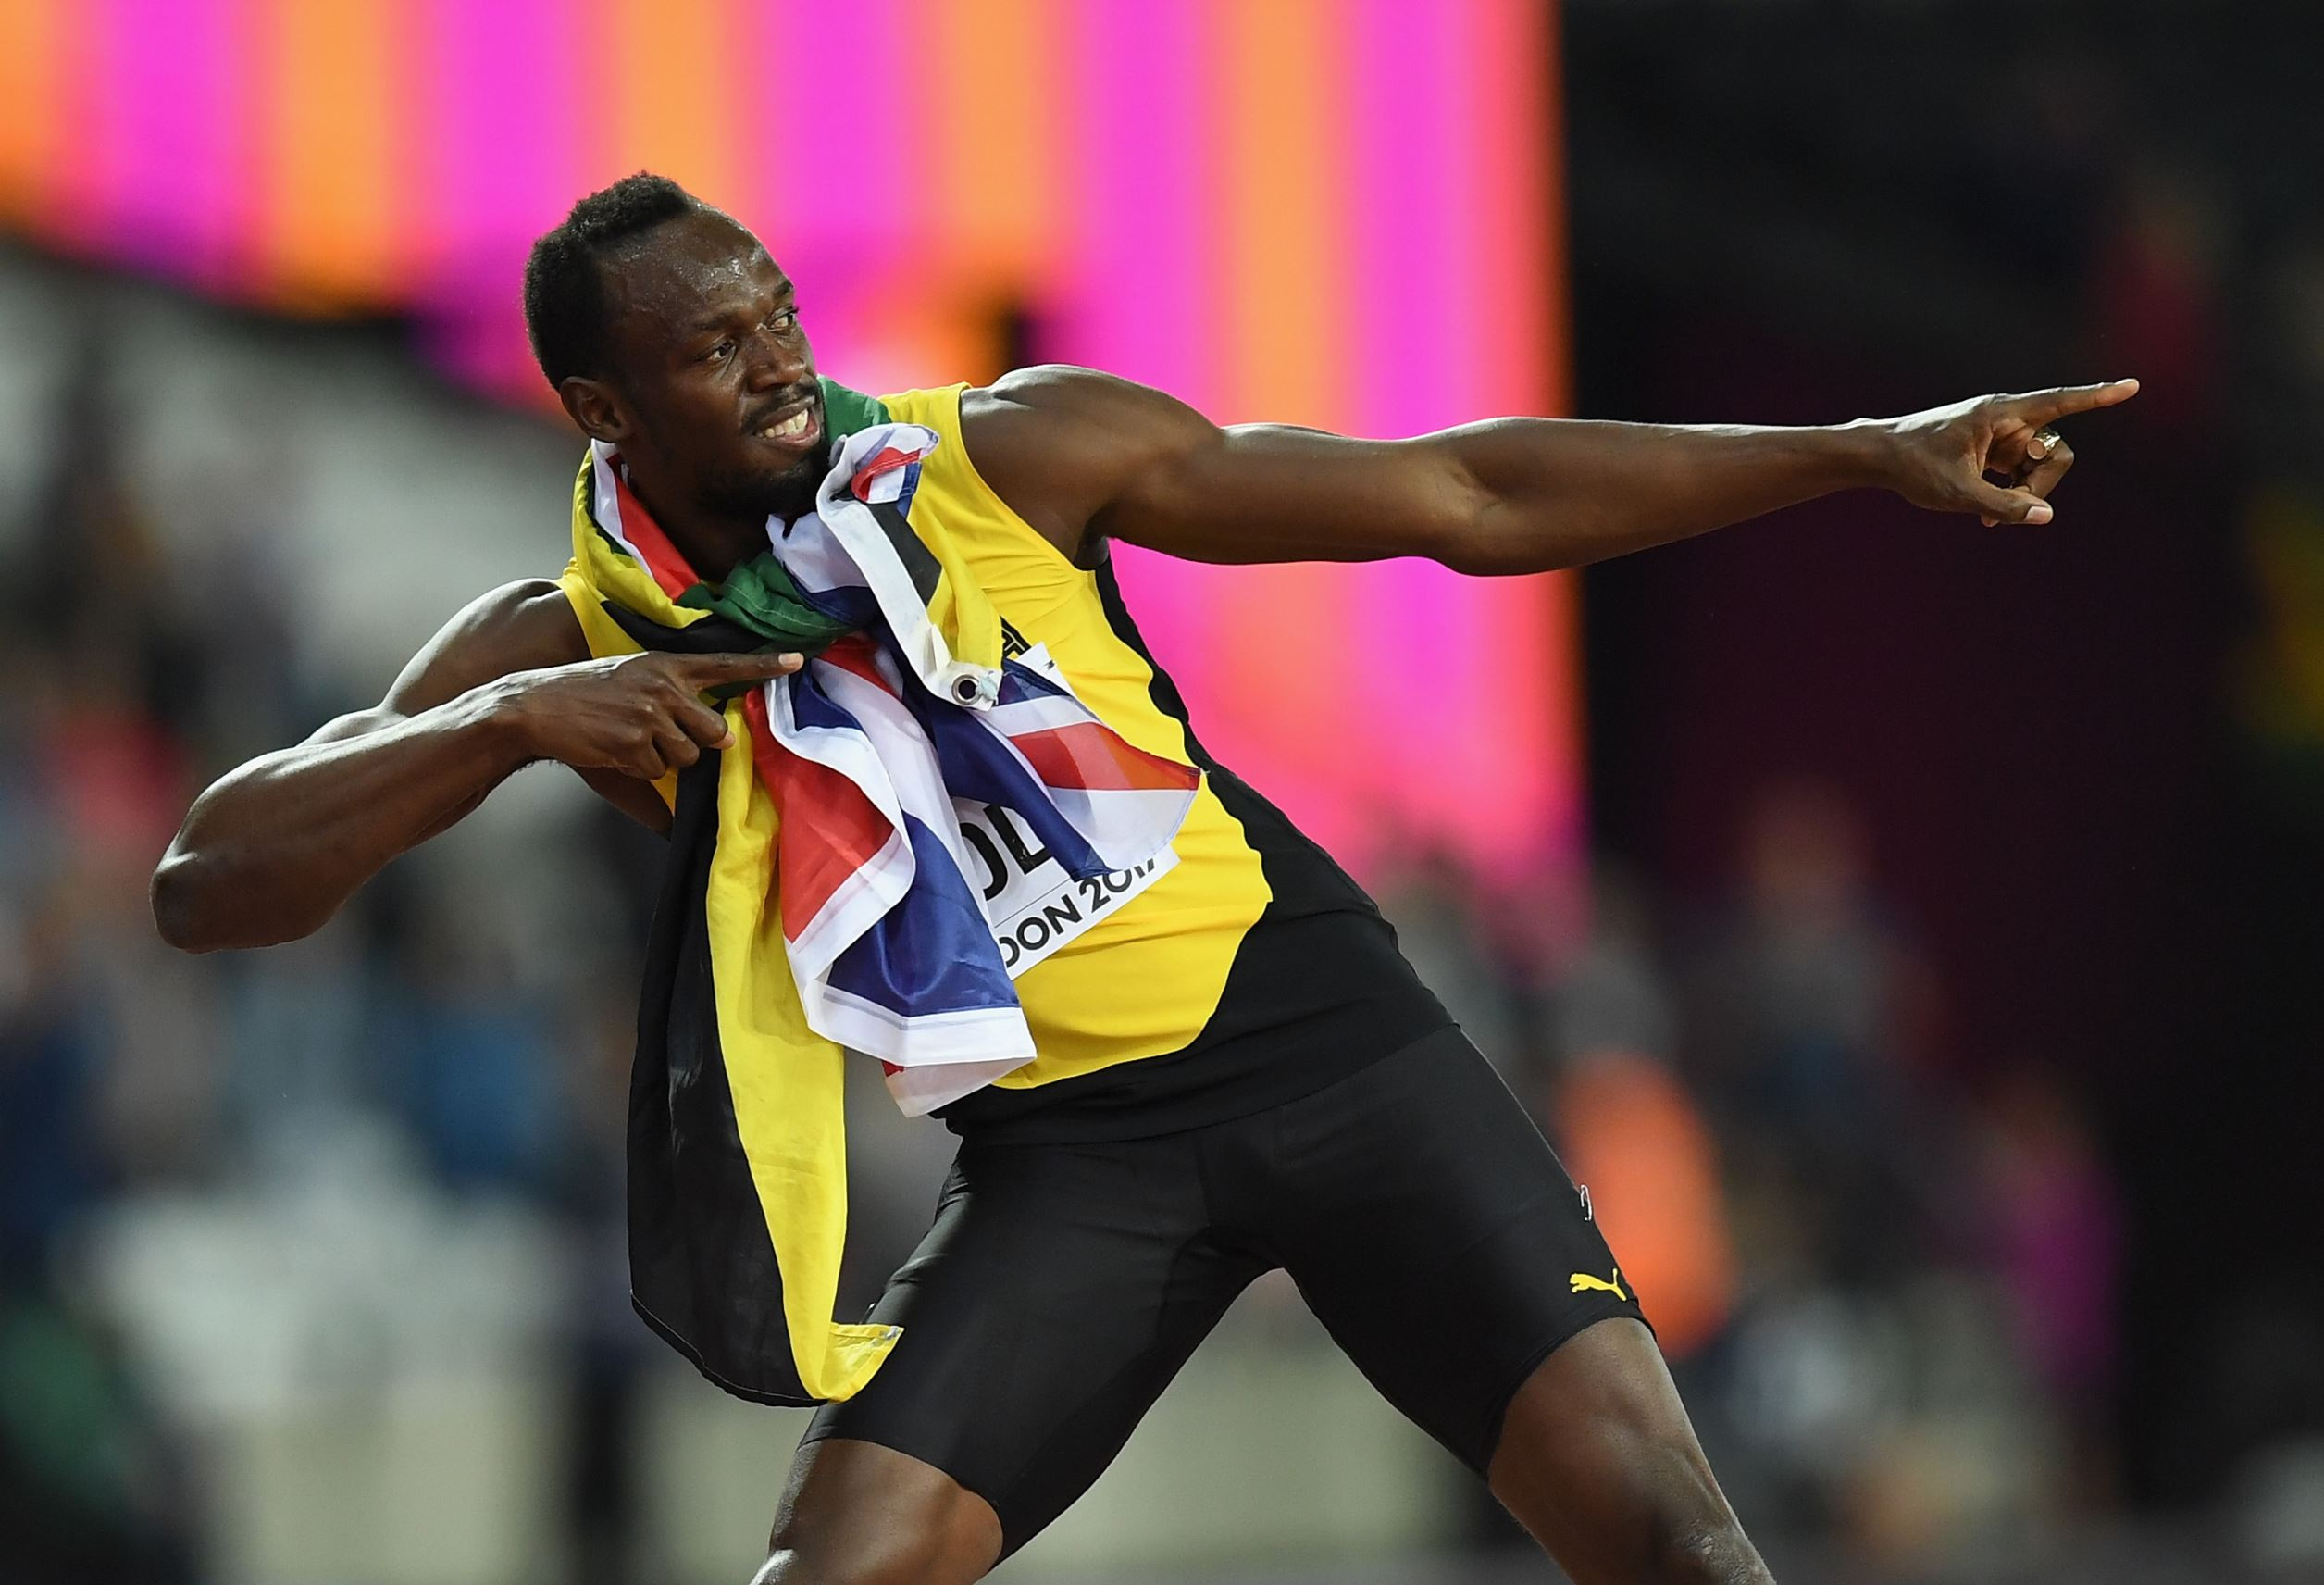 Slide 1 of 18: Usain Bolt of Jamaica celebrates during a lap of honour following finishing in third place in the mens 100m final during day two of the 16th IAAF World Athletics Championships London 2017.